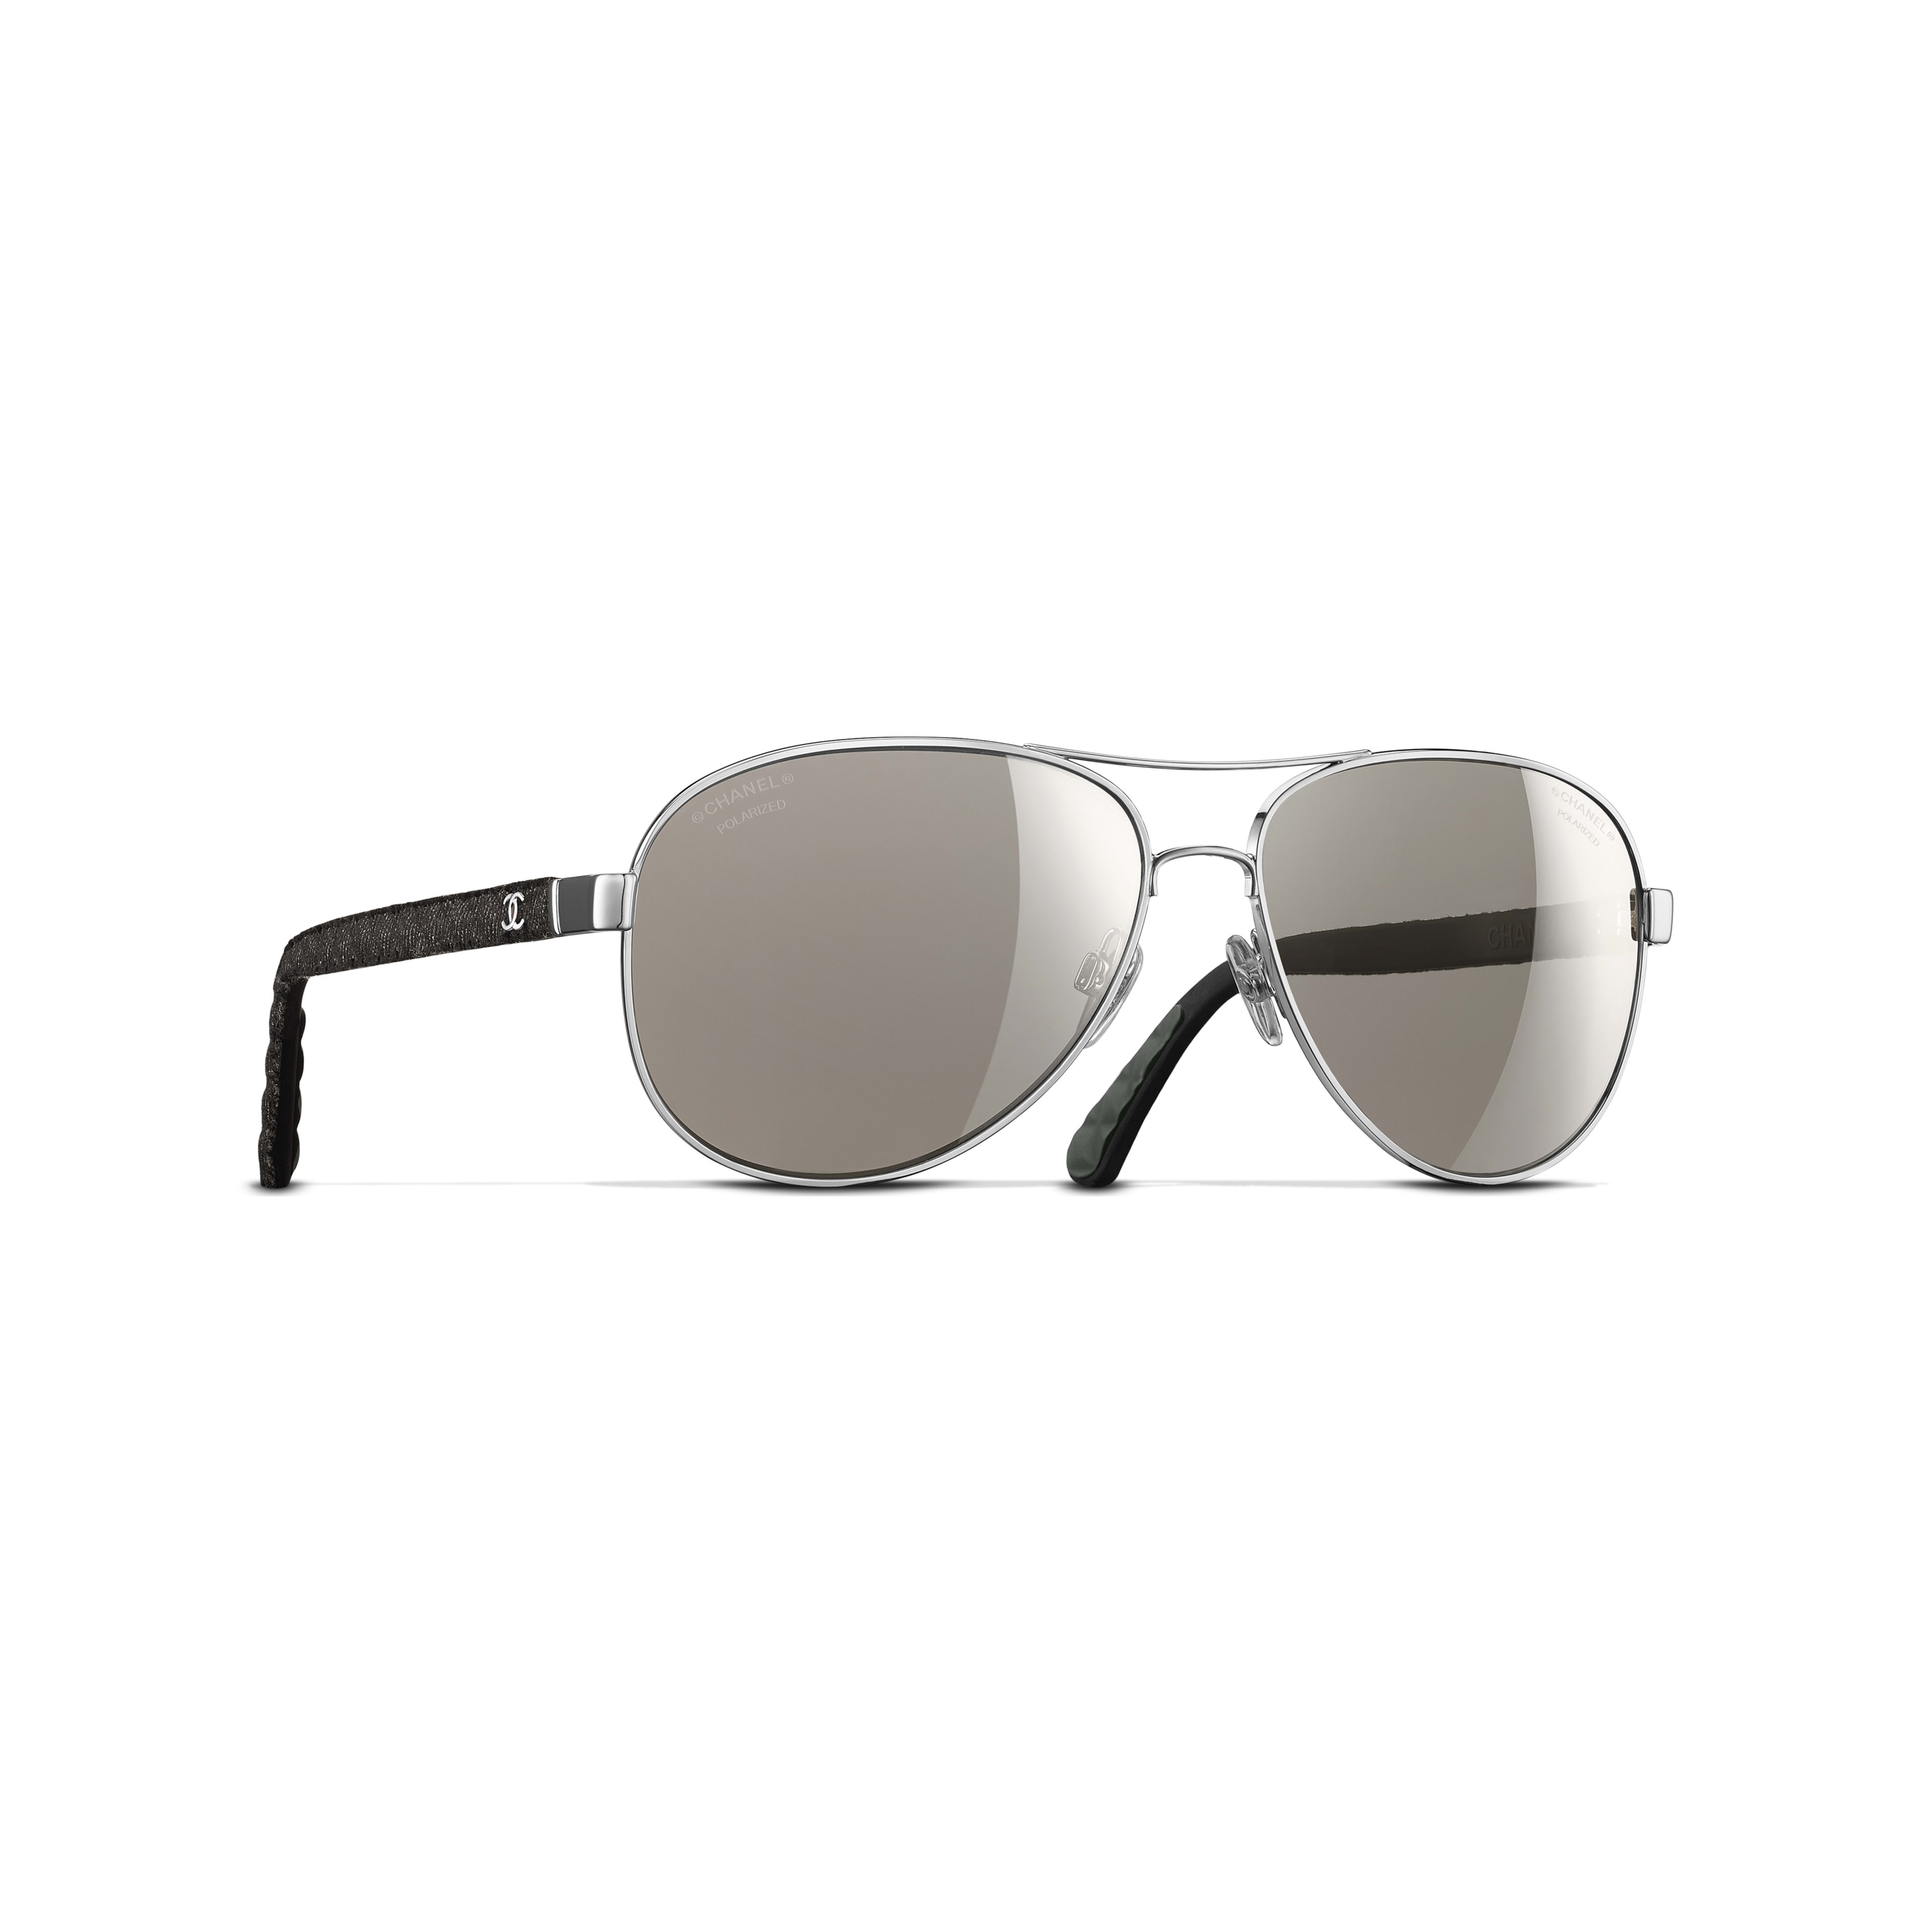 Pilot Sunglasses Metal, Rubber & Denim Silver -                                               view 1 - see full sized version